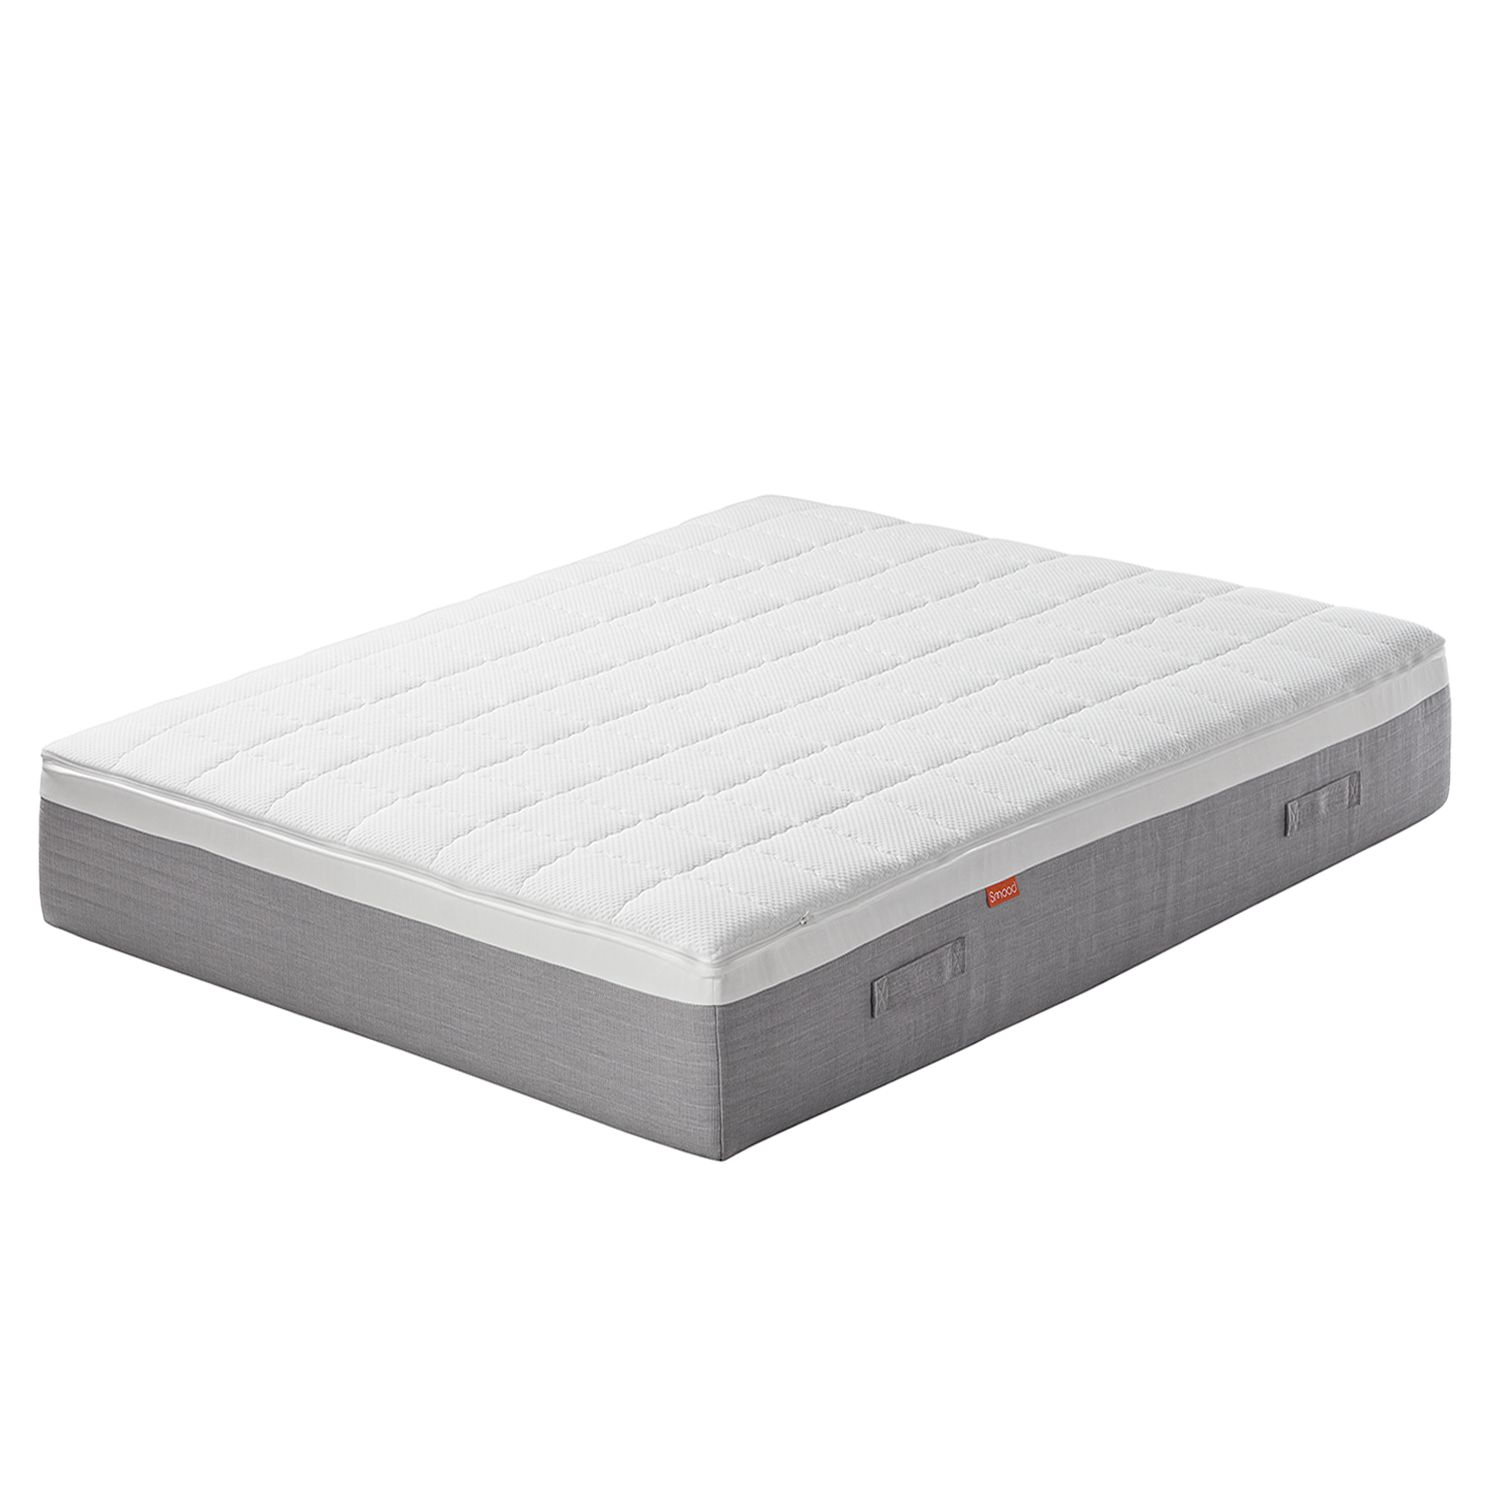 Matelas boxspring Smood Select - 160 x 200cm, Smood